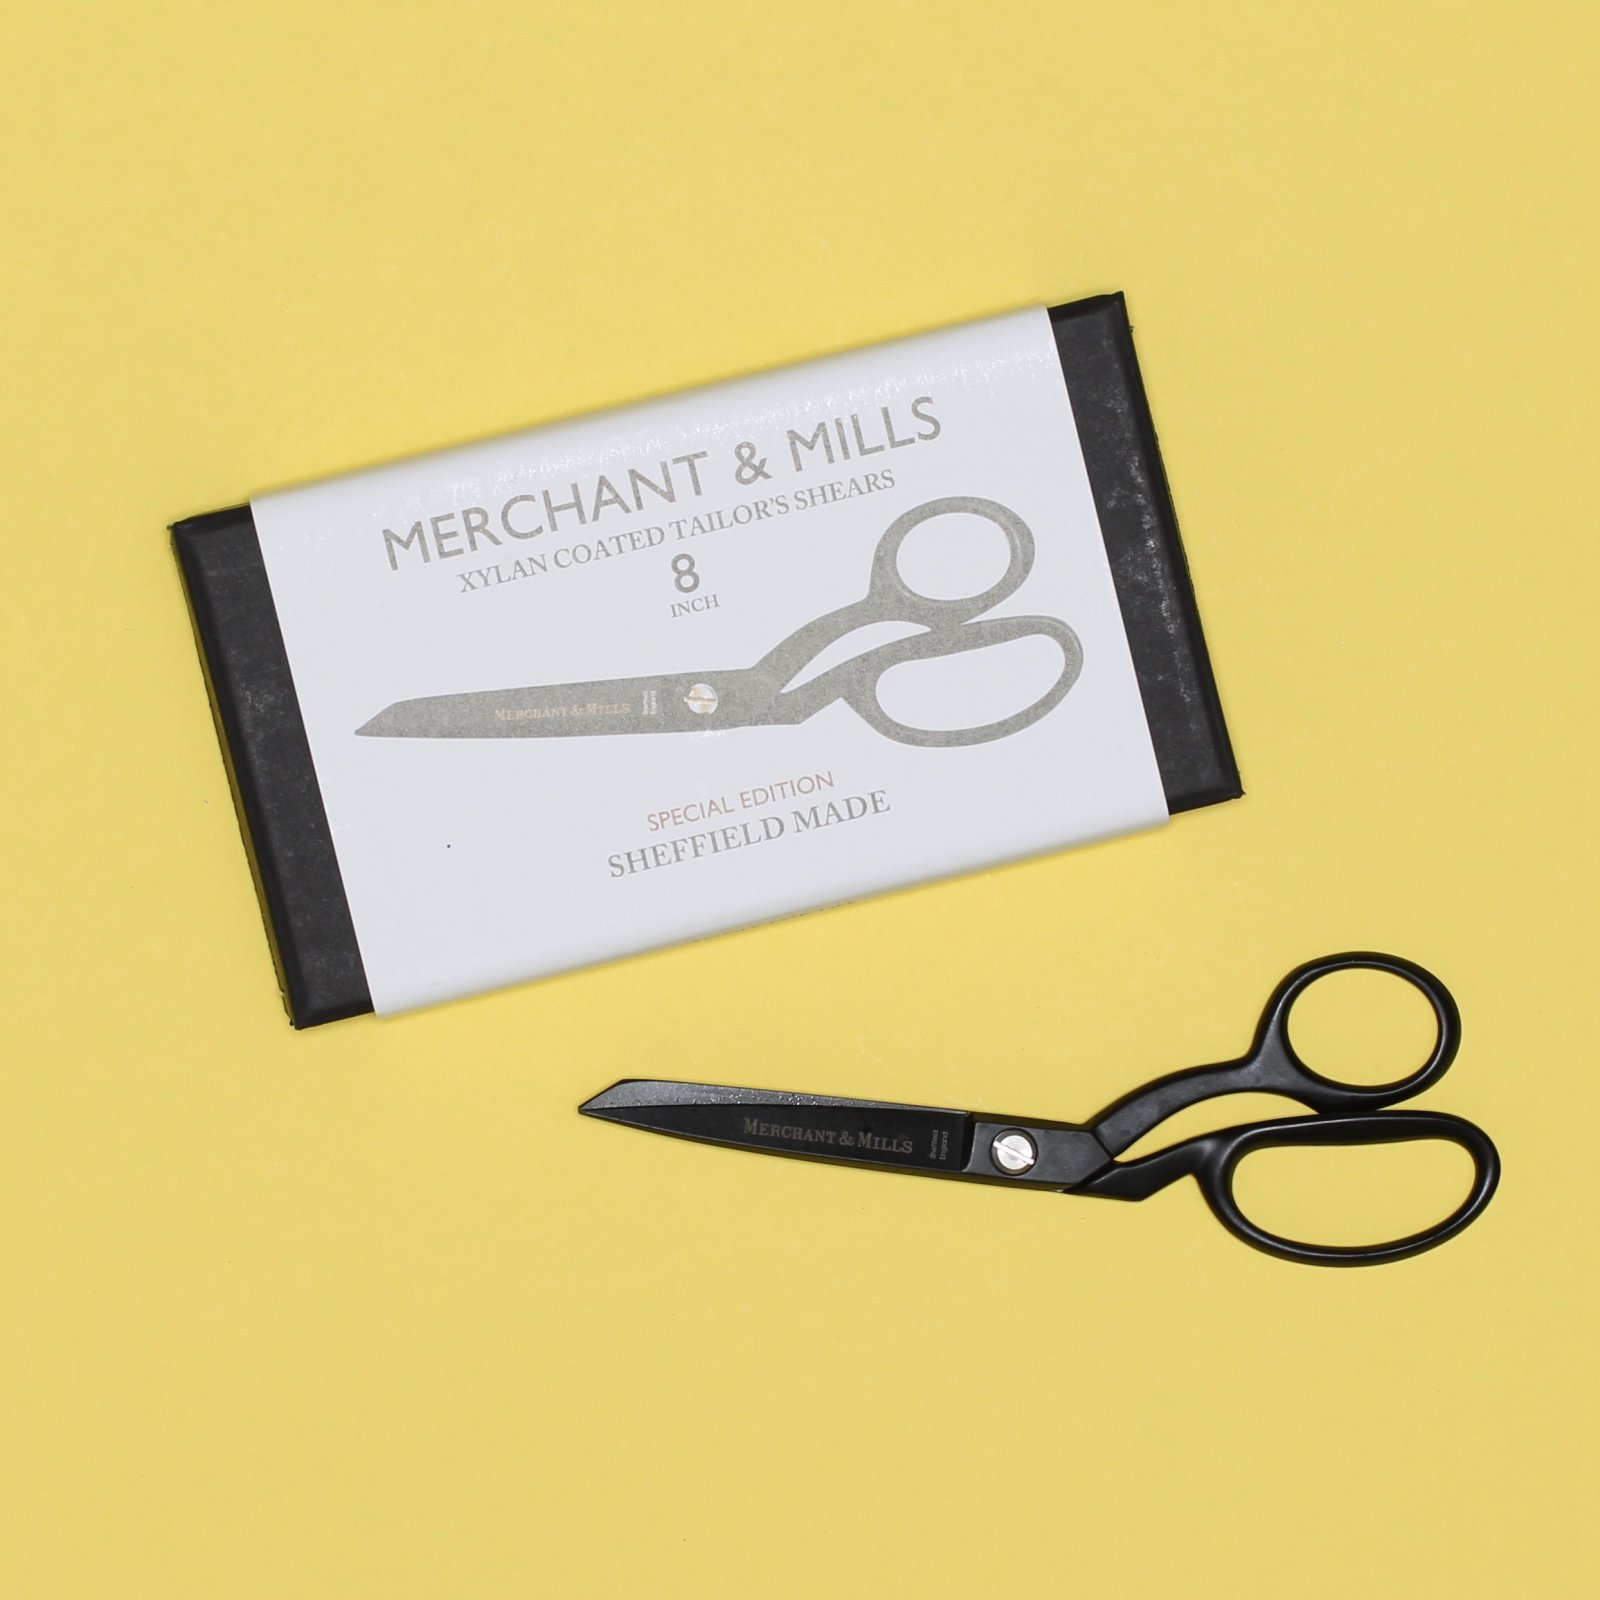 Merchant Mills Xylan Coated 8 Shear Special Edition